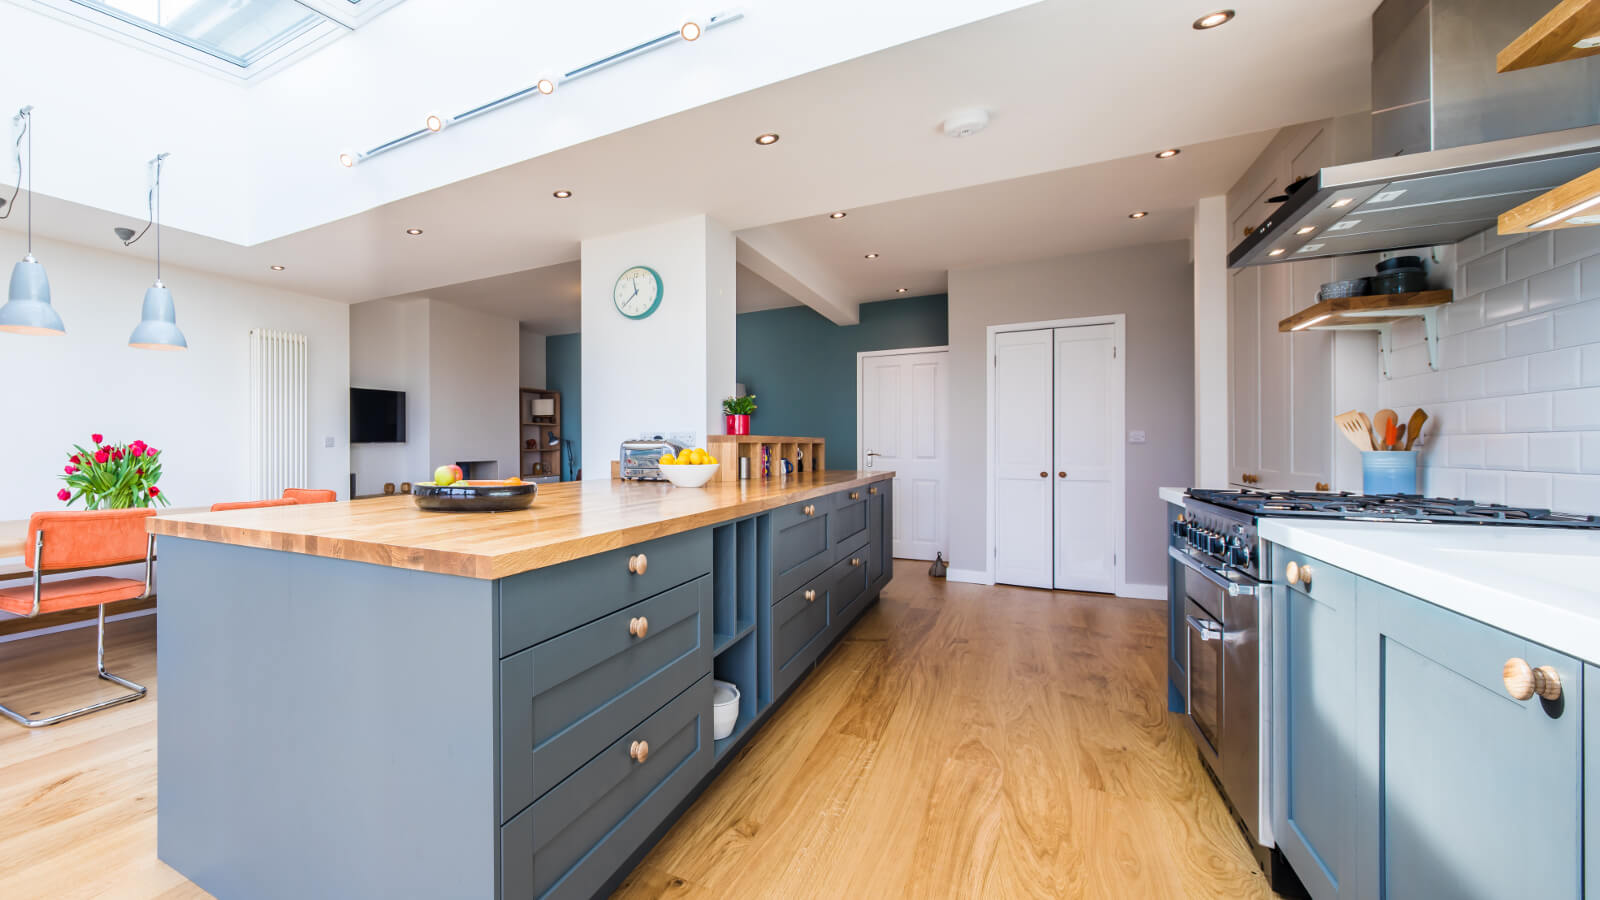 new oak kitchen with long kitchen island and breakfast bar